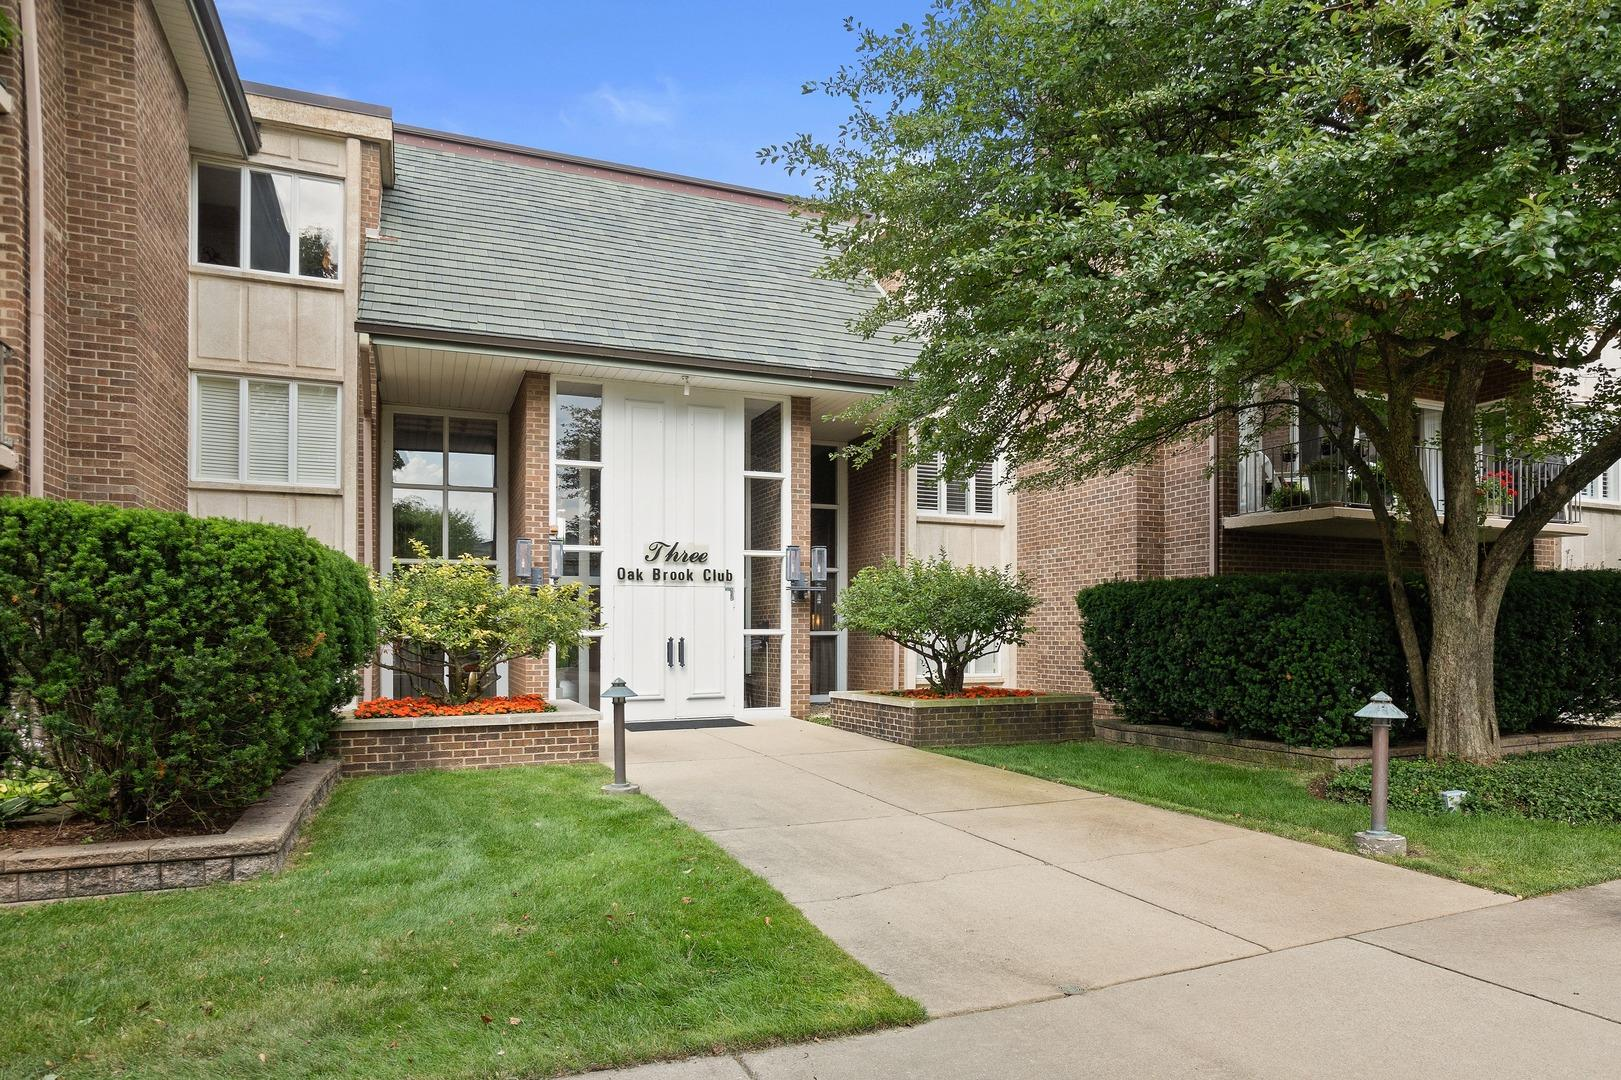 3 Oak Brook Club Drive #E307, Oak Brook, IL 60523 - #: 10480325